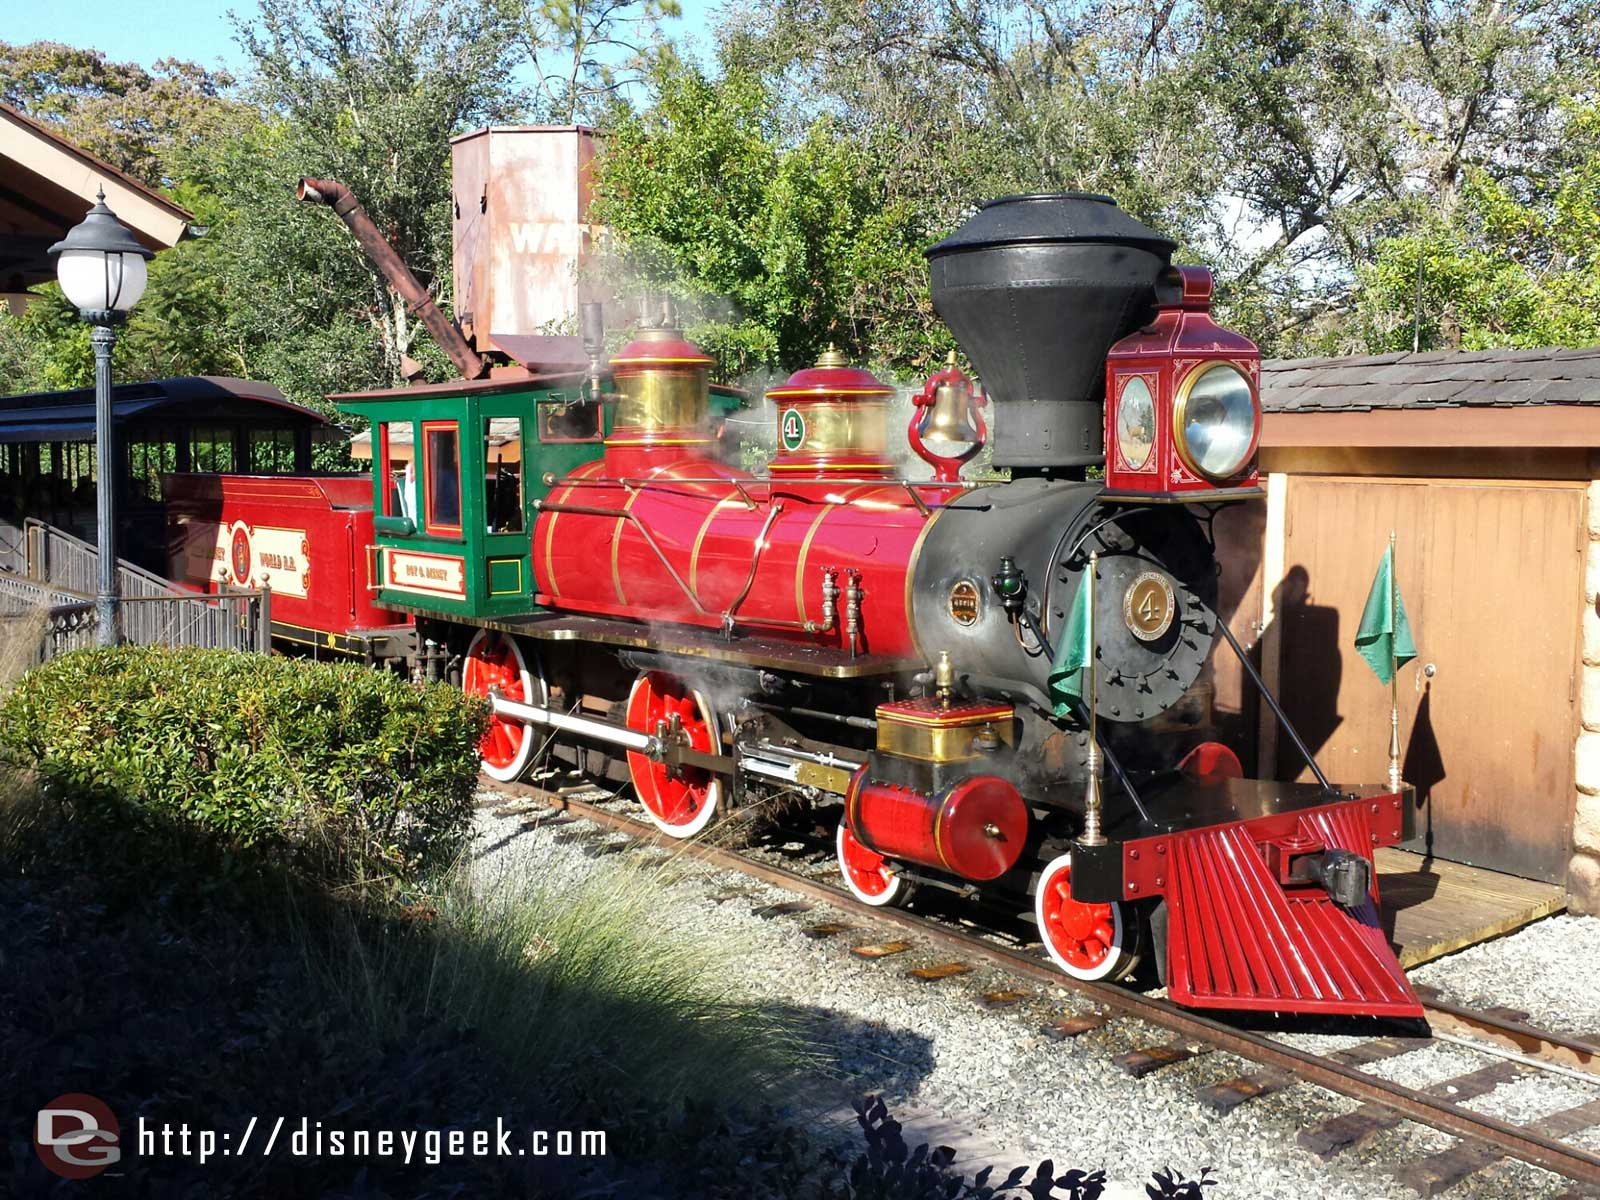 Walt Disney World Railroad – the Roy O Disney in the Fantasyland station